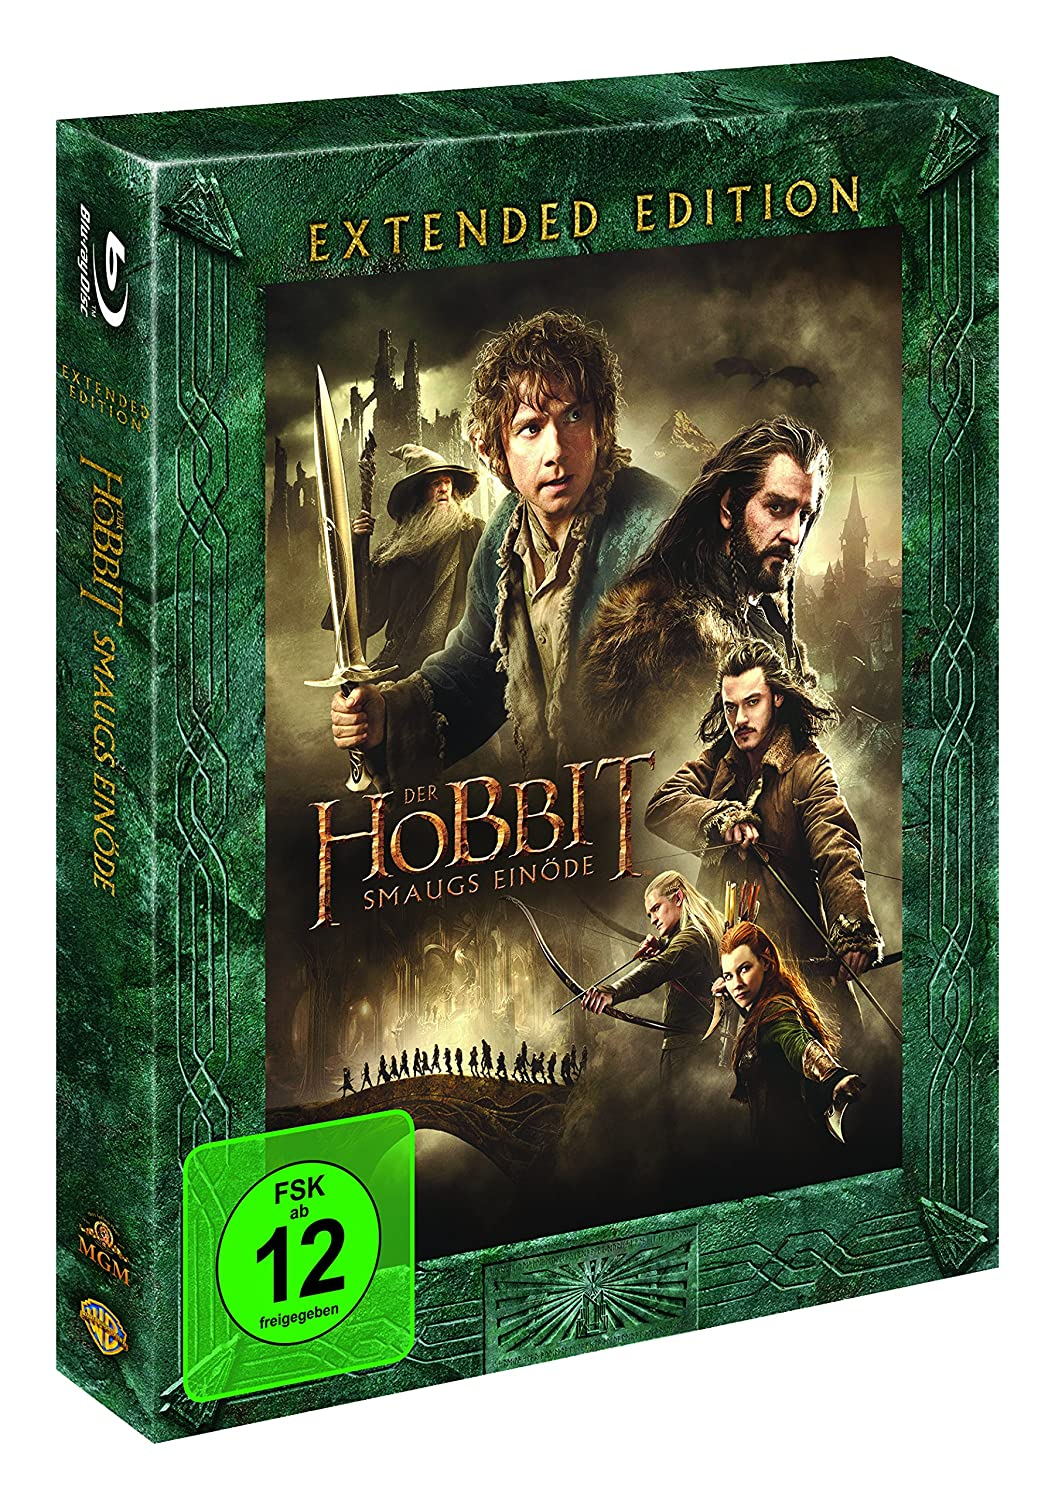 Details About Der Hobbit Smaugs Einöde Extended Edition 3 Disc Blu Ray Box Set Dt Goods